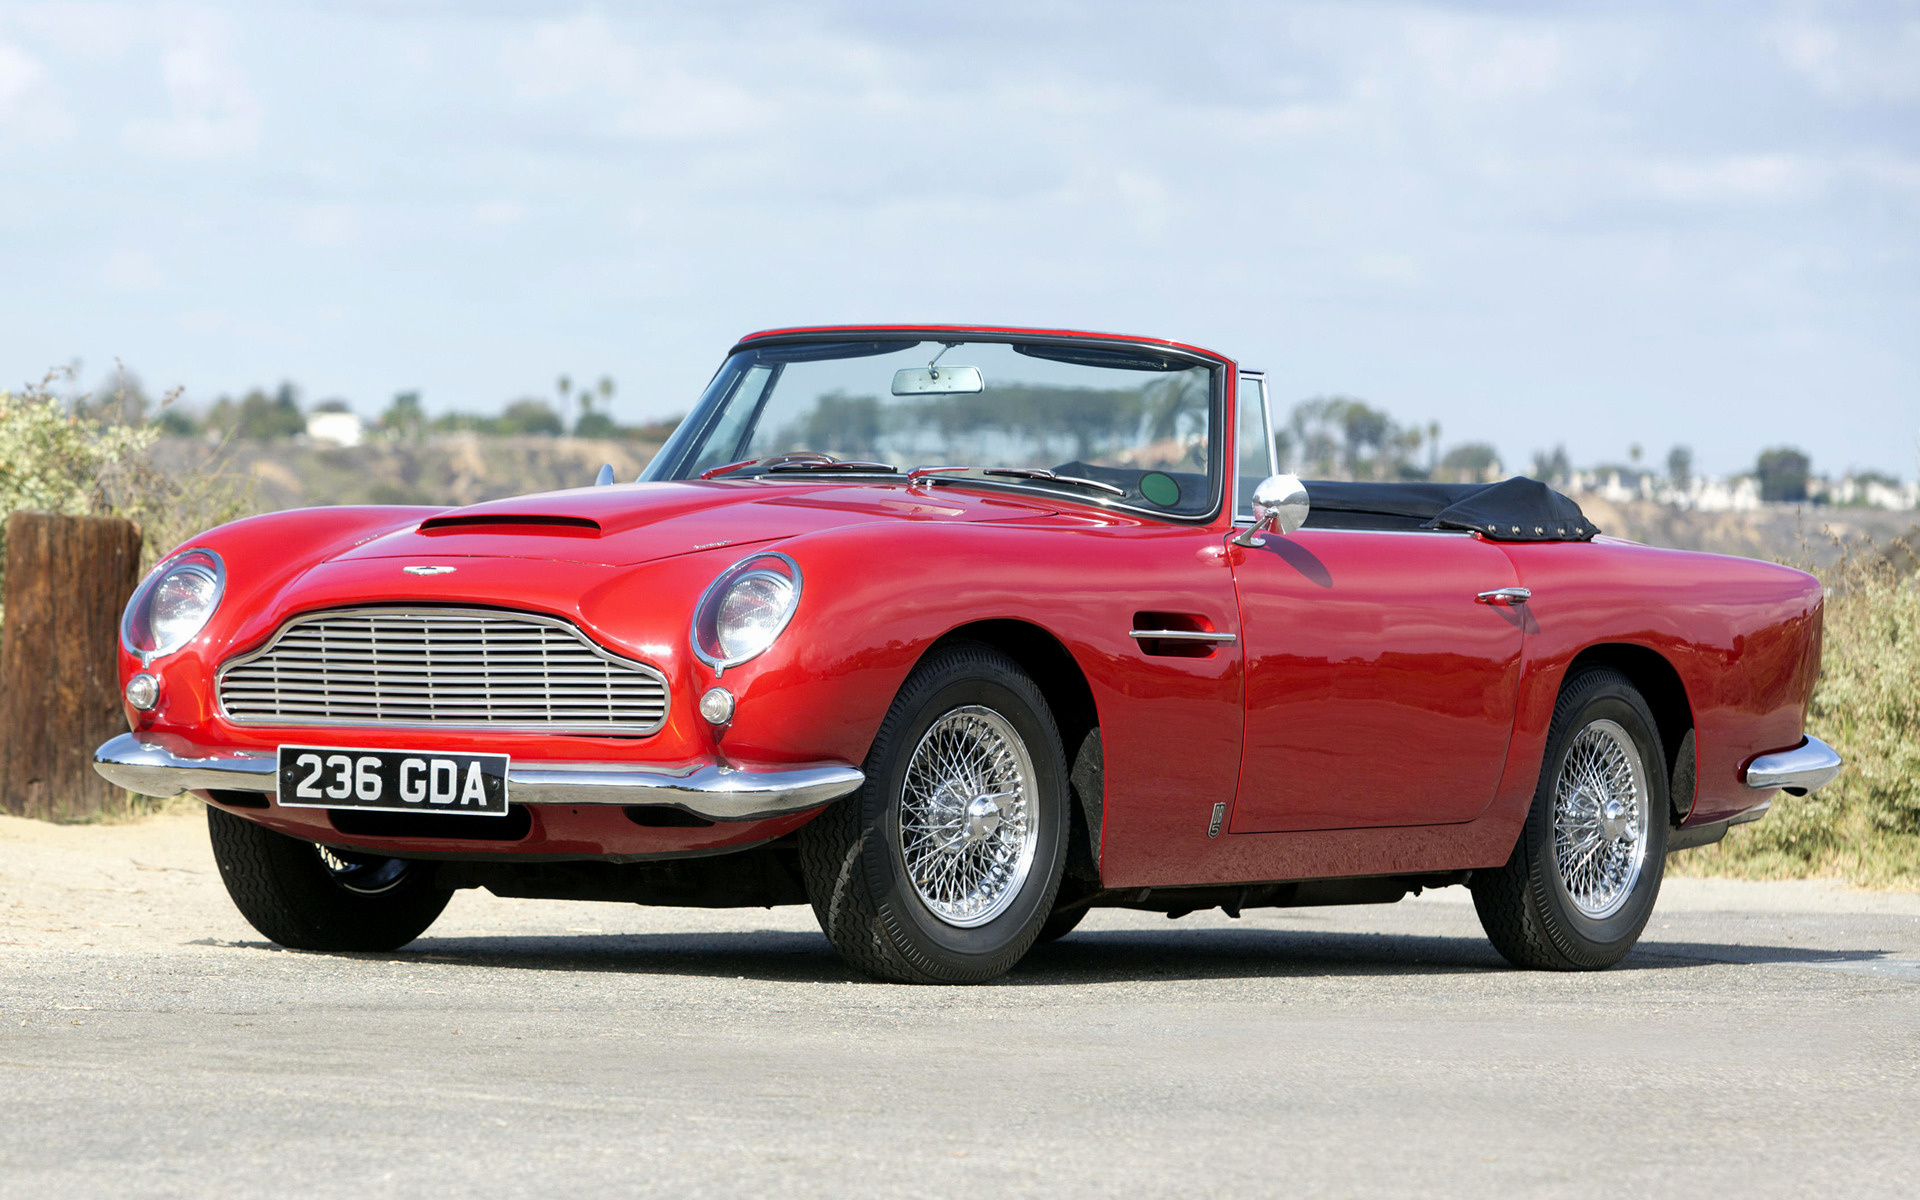 aston martin db5 convertible 1963 uk wallpapers and hd images car. Cars Review. Best American Auto & Cars Review